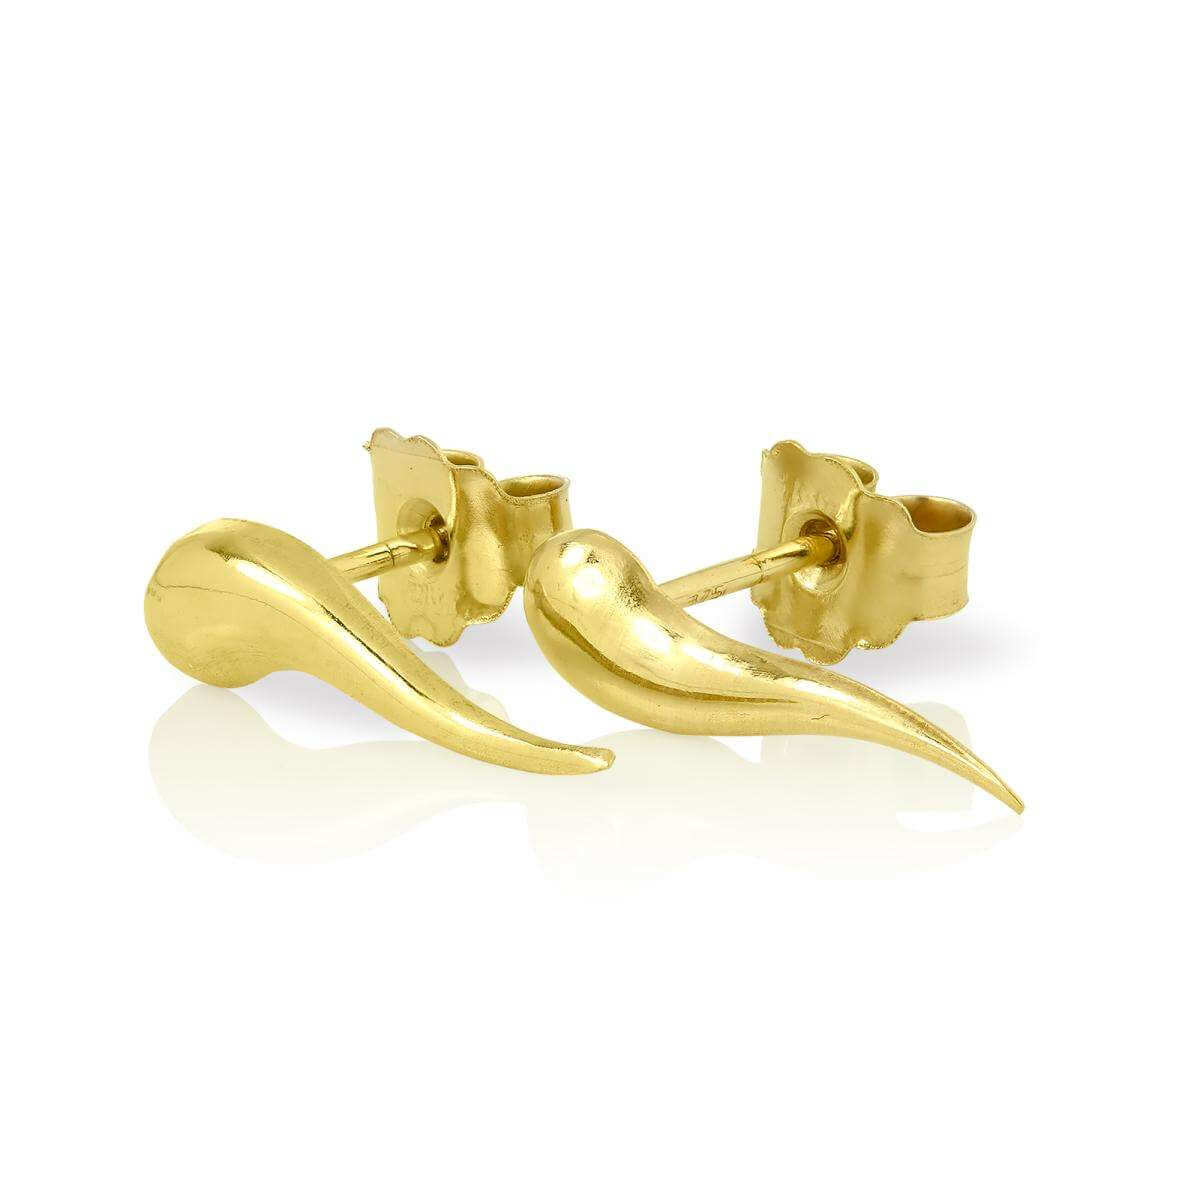 9ct Gold Cornicello Horn Stud Earrings